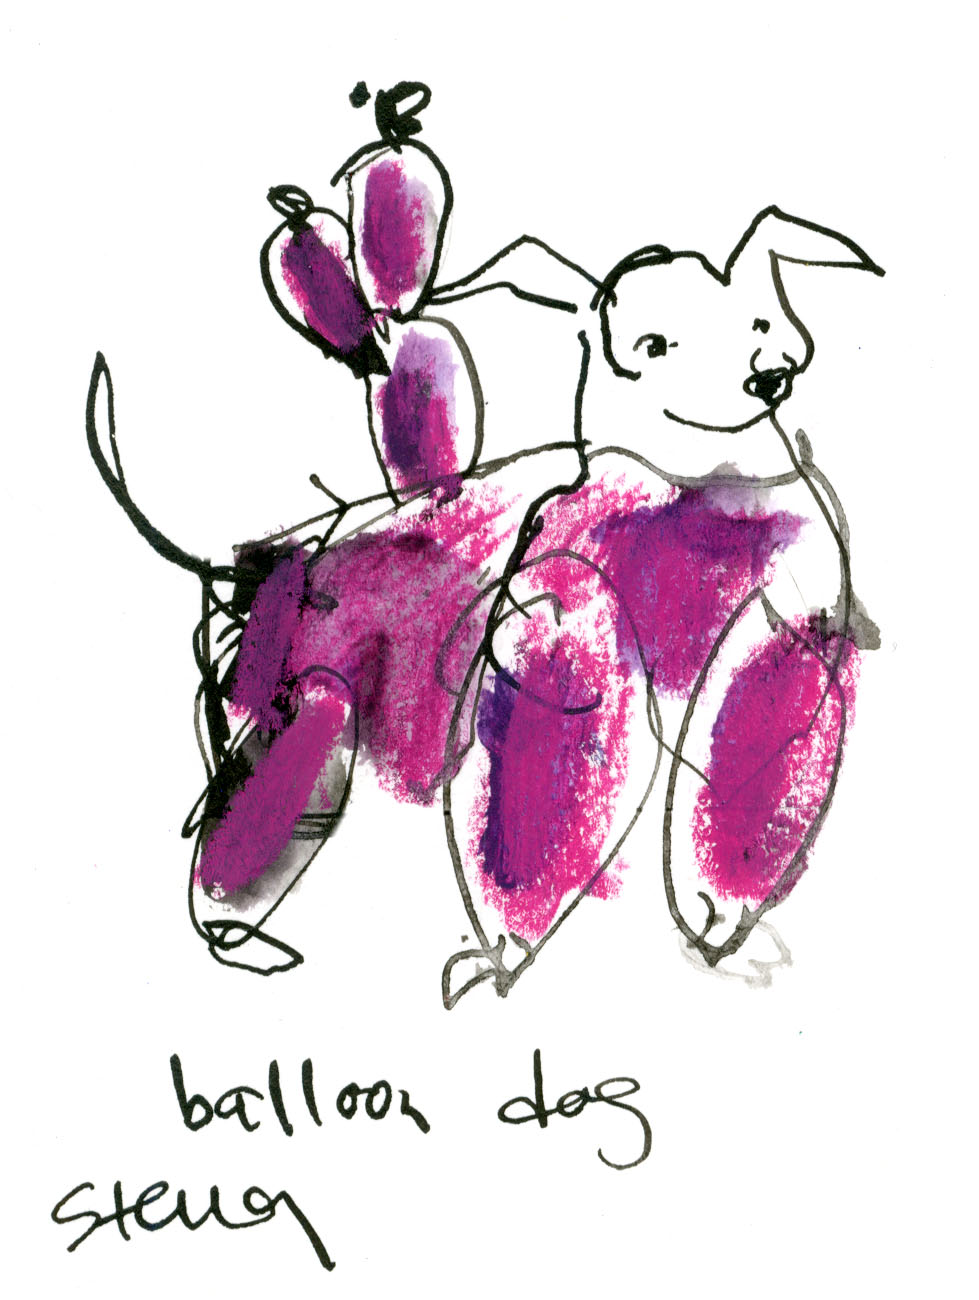 Balloon dog! © Carly Larsson 2014